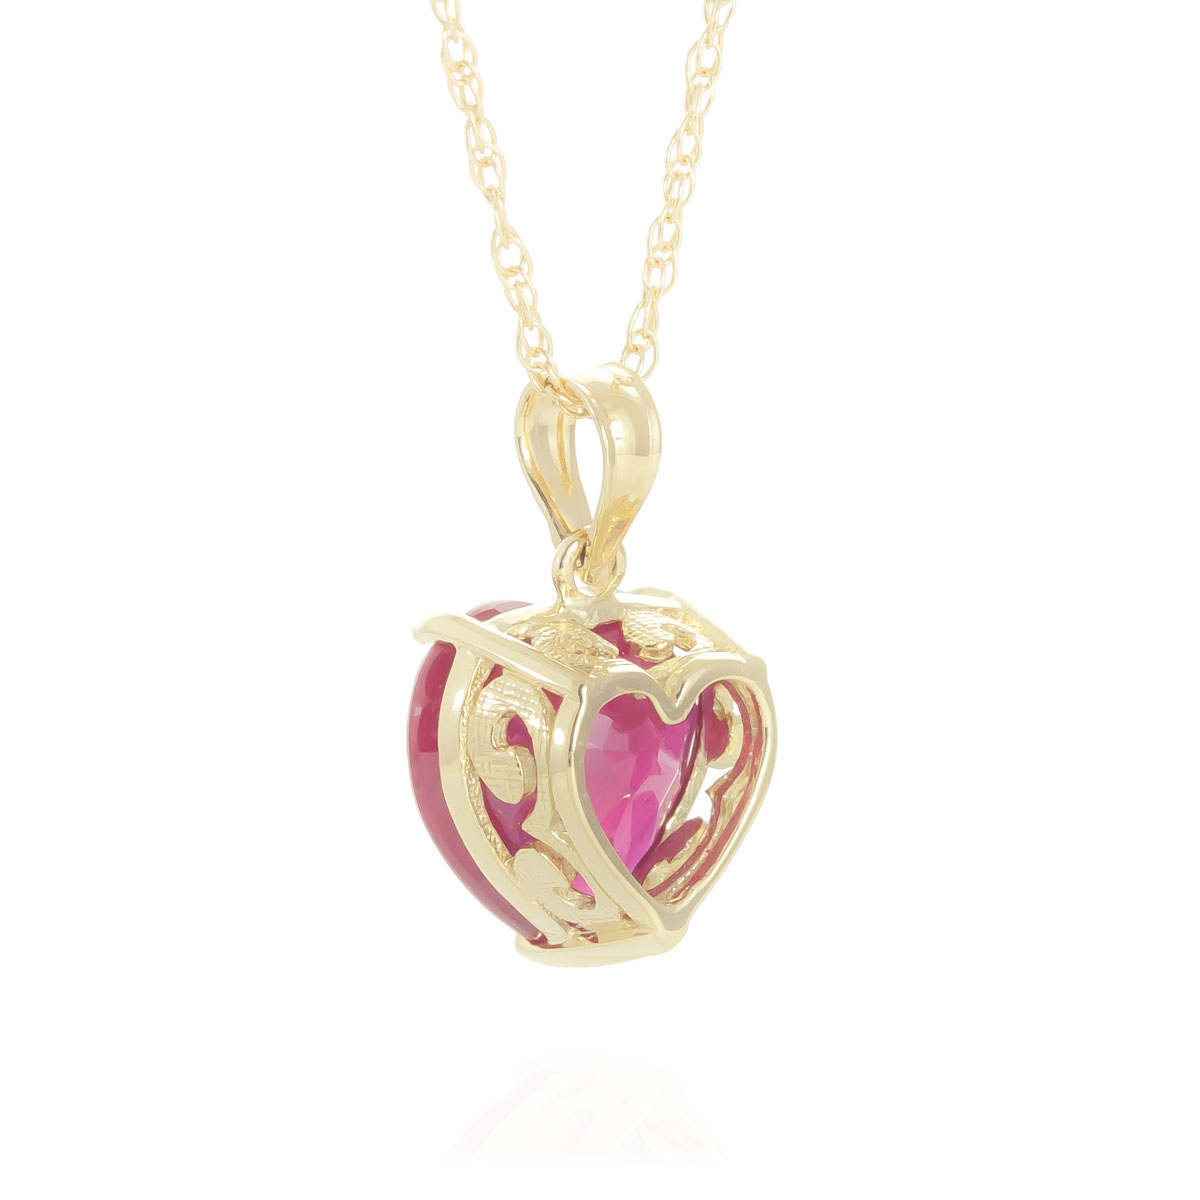 Ruby Large Heart Pendant Necklace 4.3 ct in 9ct Gold